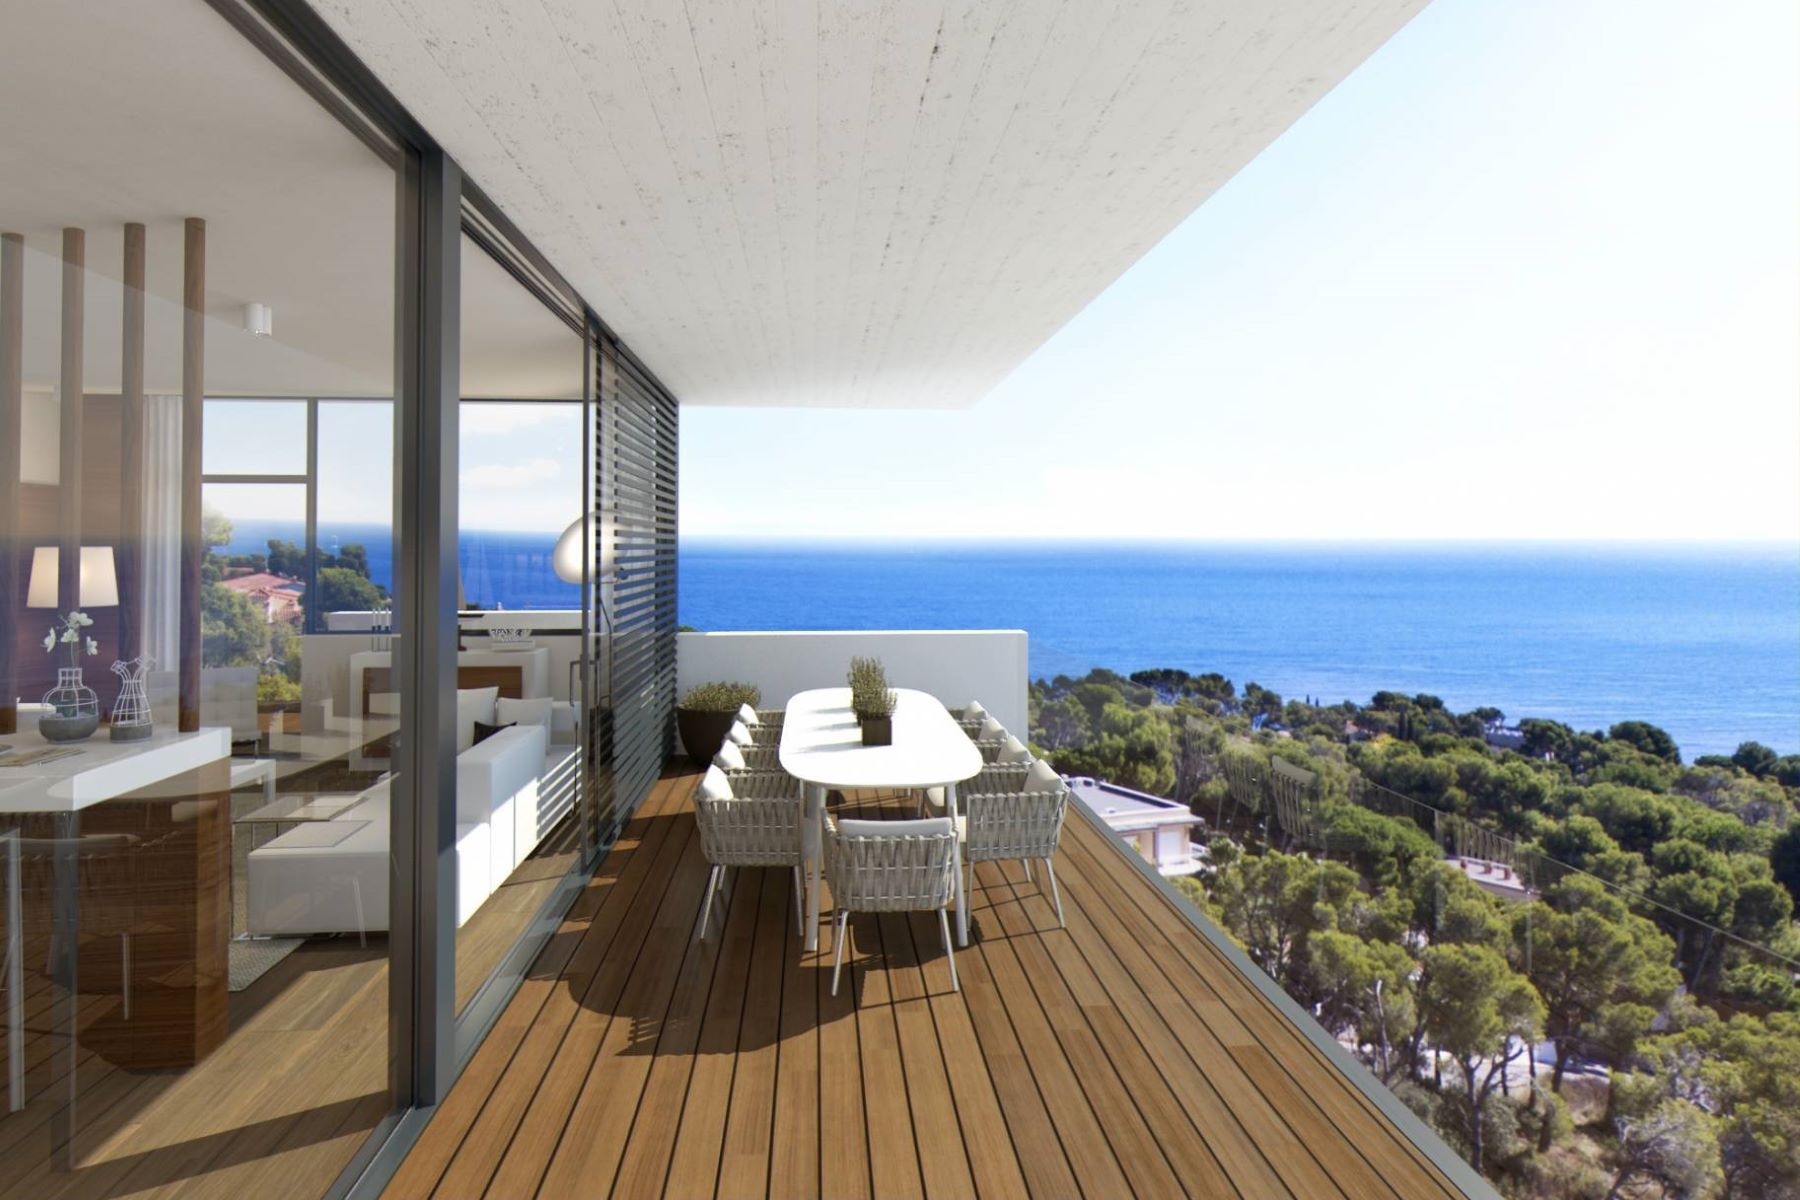 Apartman Dairesi için Satış at Penthouse with sea view in a new exclusive development Playa De Aro, Costa Brava, 17250 Ispanya